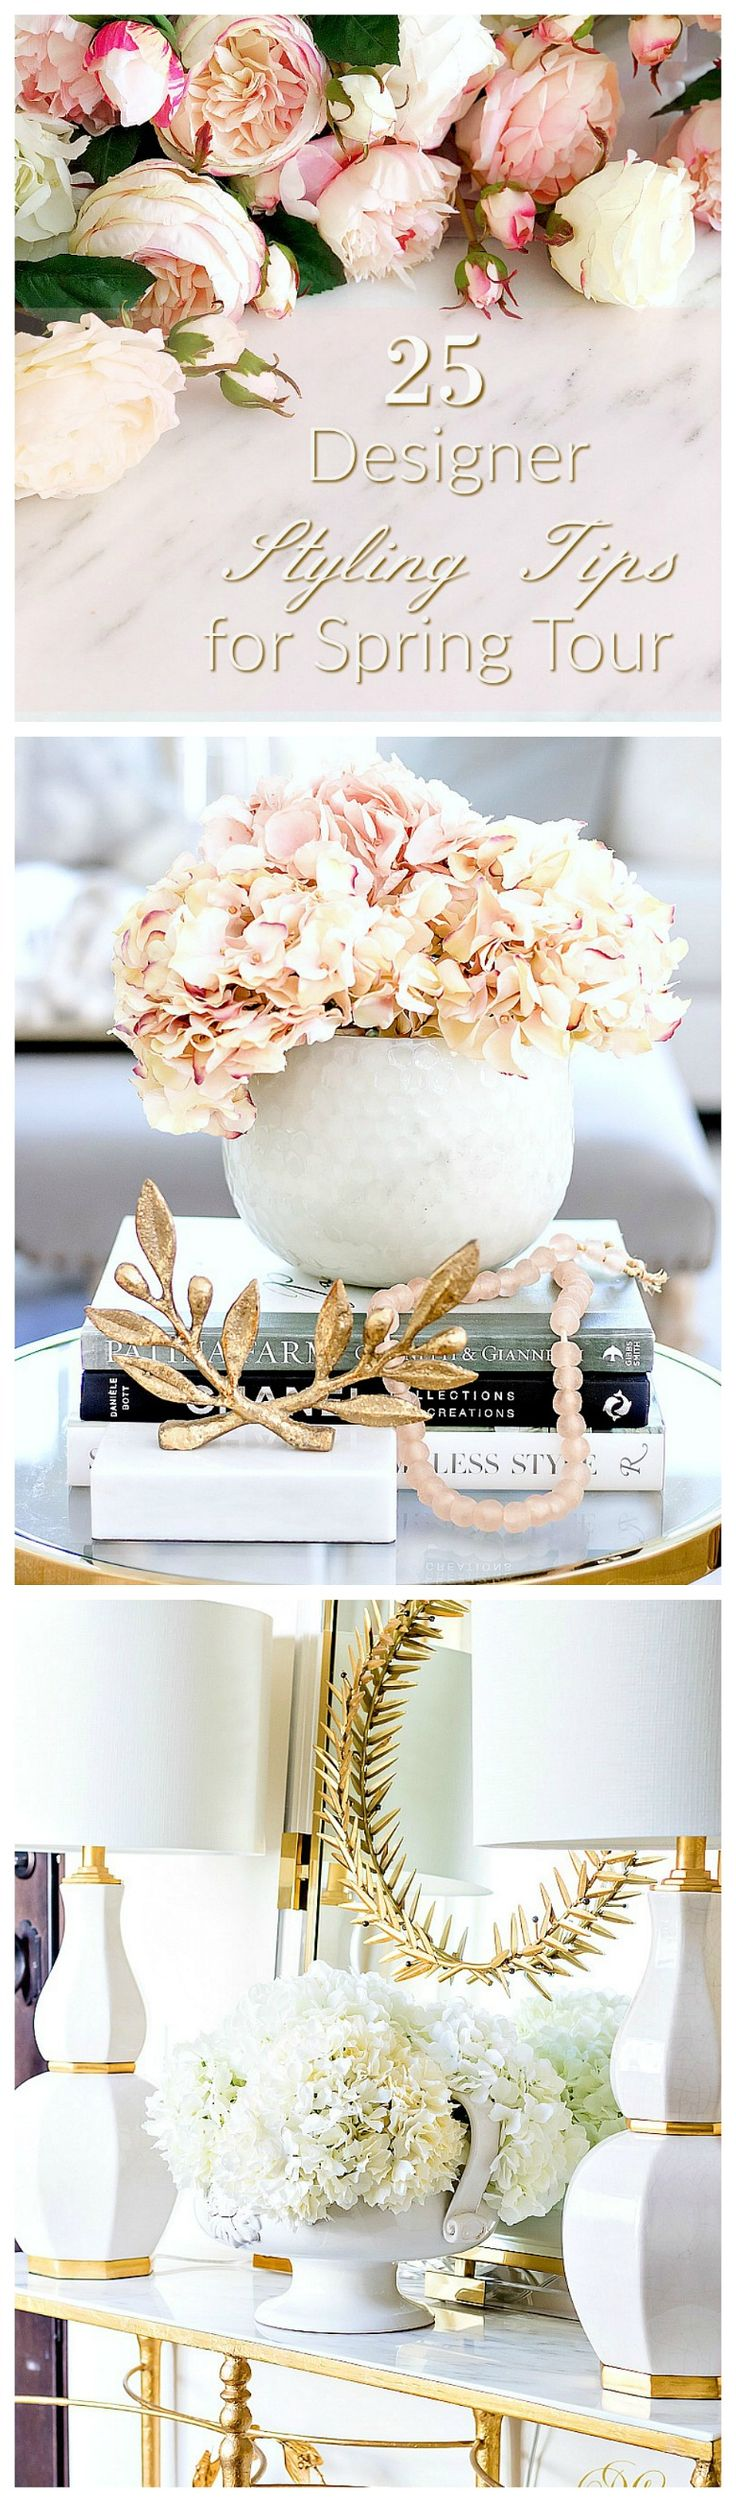 25 Designer Styling Tips for Spring - Decorating with Flowers - where to find good faux florals - how to style flowers -vases